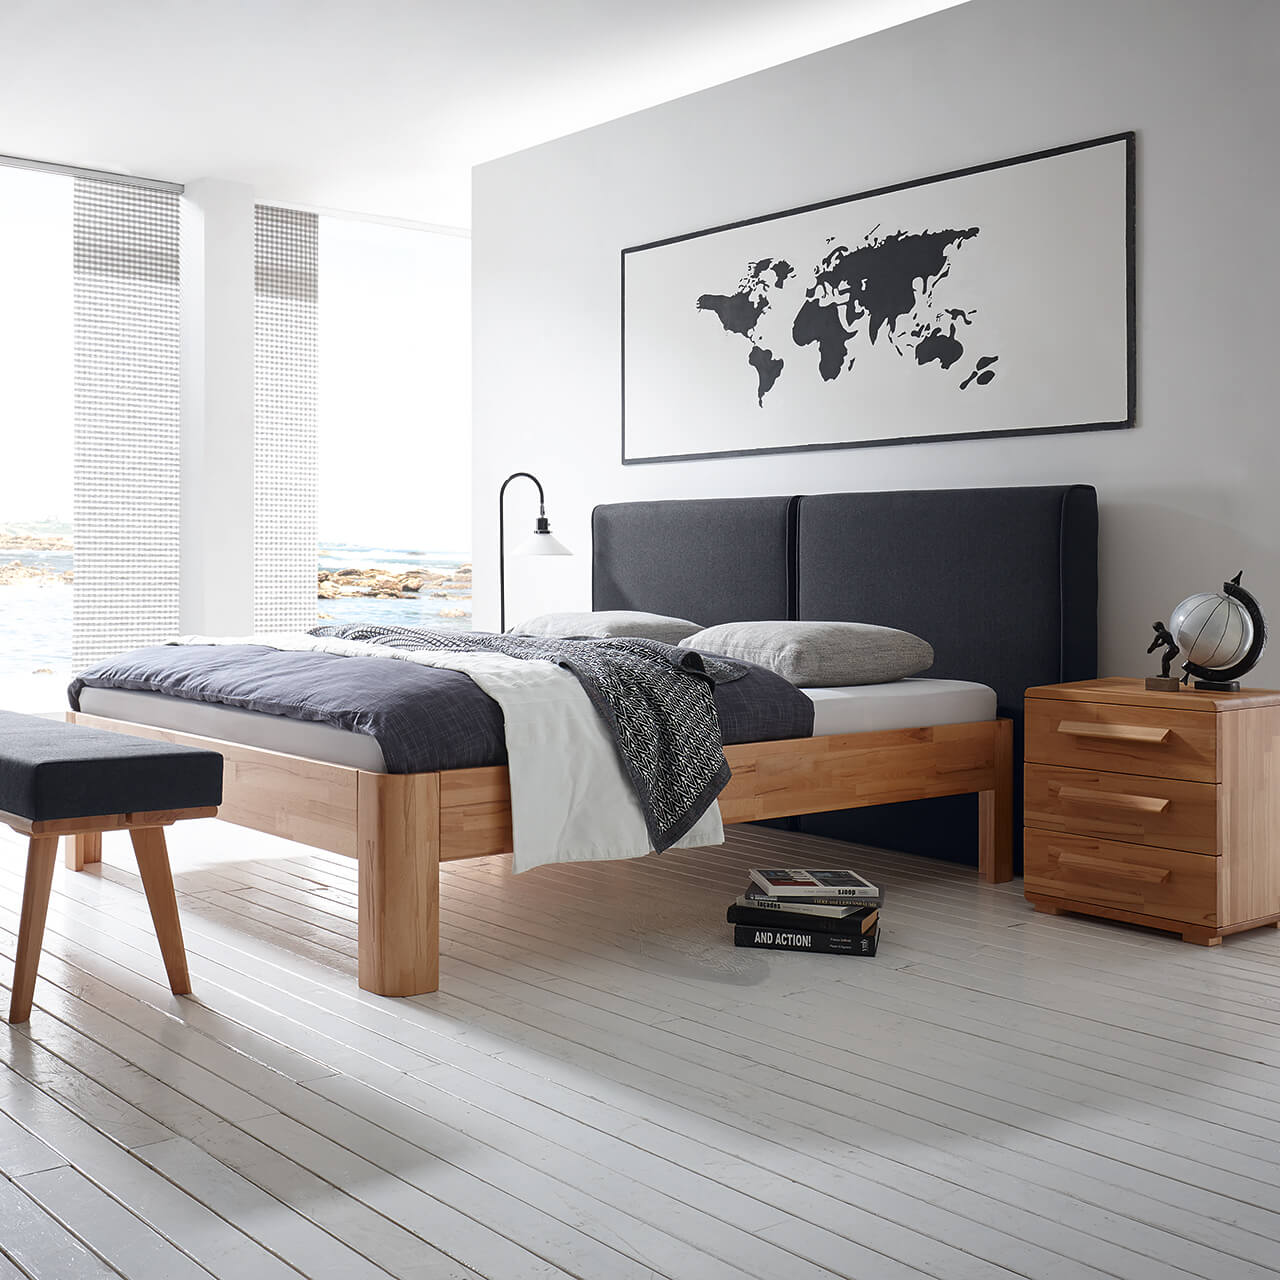 bettrahmen fine line syma auch f r suma wasserbetten geeignet suma wasserbetten. Black Bedroom Furniture Sets. Home Design Ideas